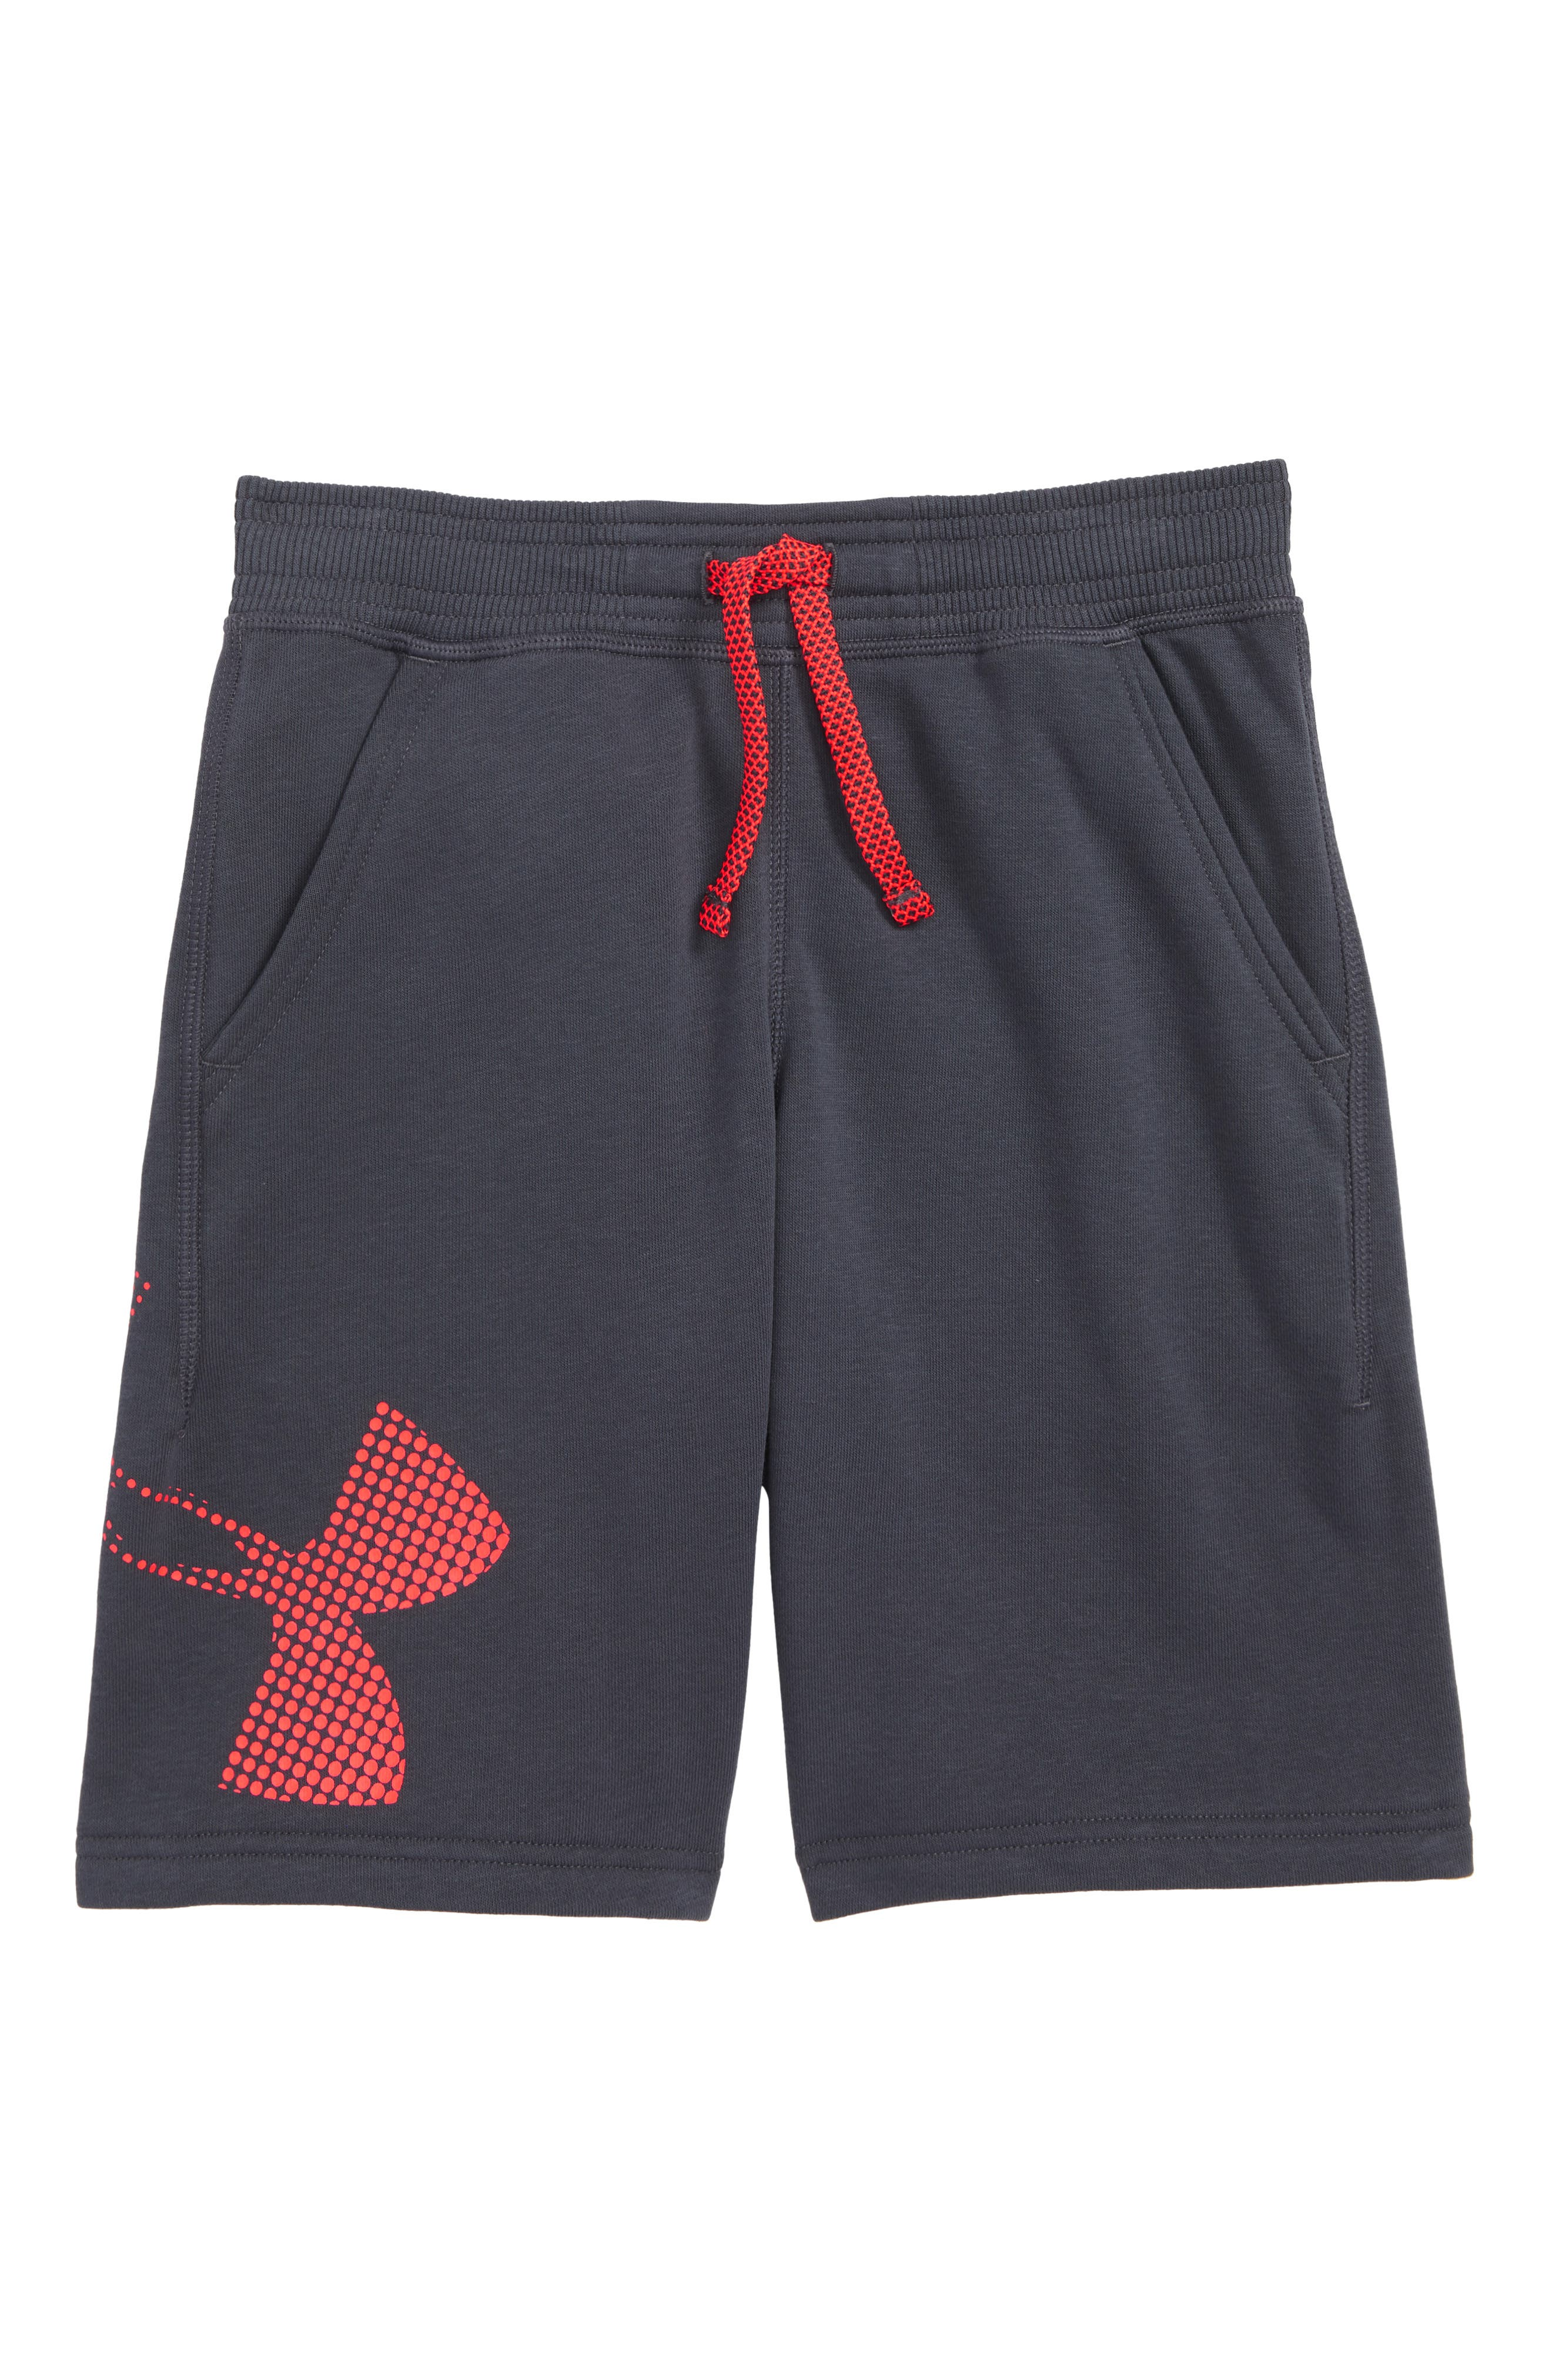 Graphic Knit Shorts,                         Main,                         color, Stealth Gray/ Neon Coral